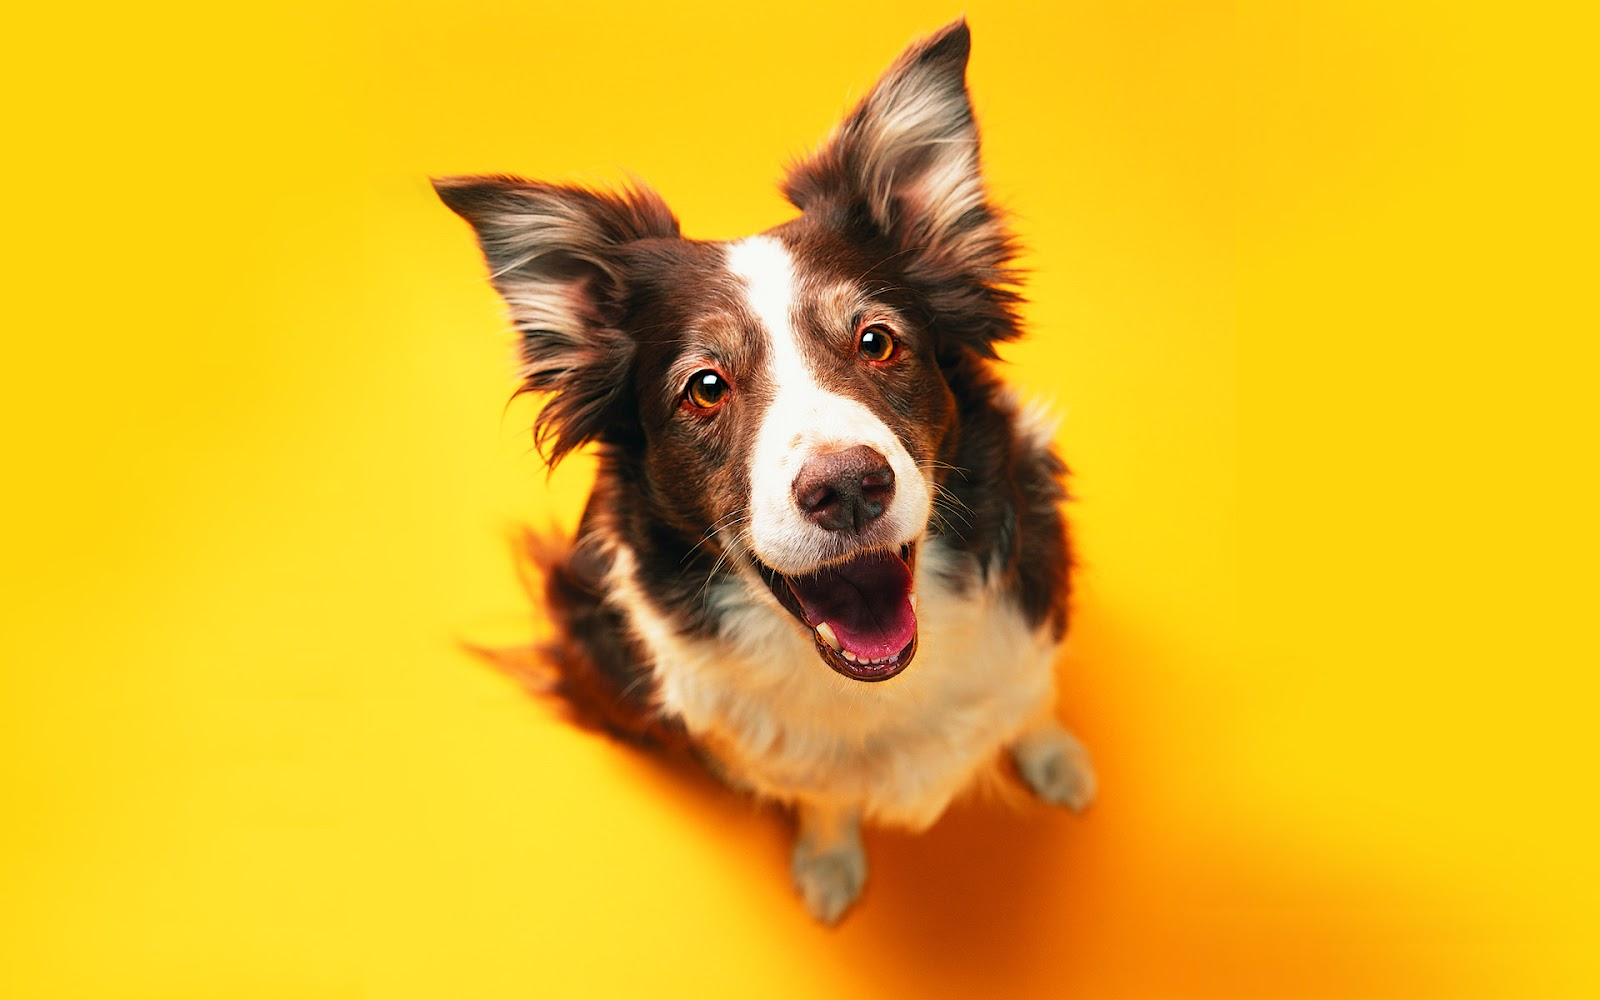 1600x1000 Funny Dog On The Yellow Background Wallpaper D #6499 Wallpaper ...